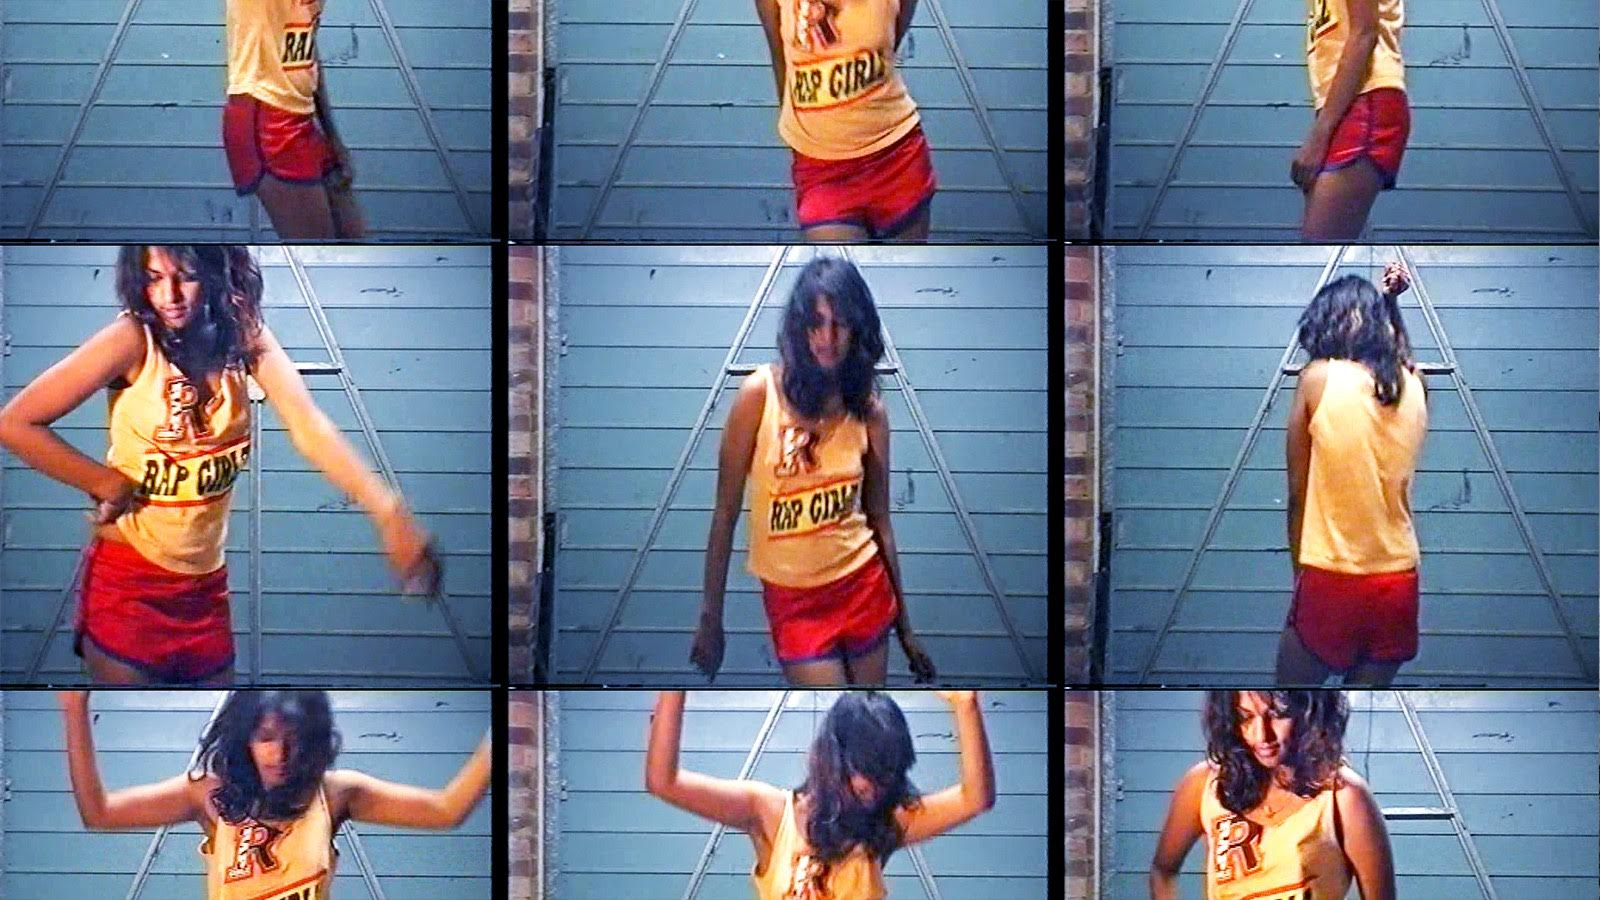 Images of M.I.A. dancing. These were included in the documentary but were filmed by M.I.A. herself.